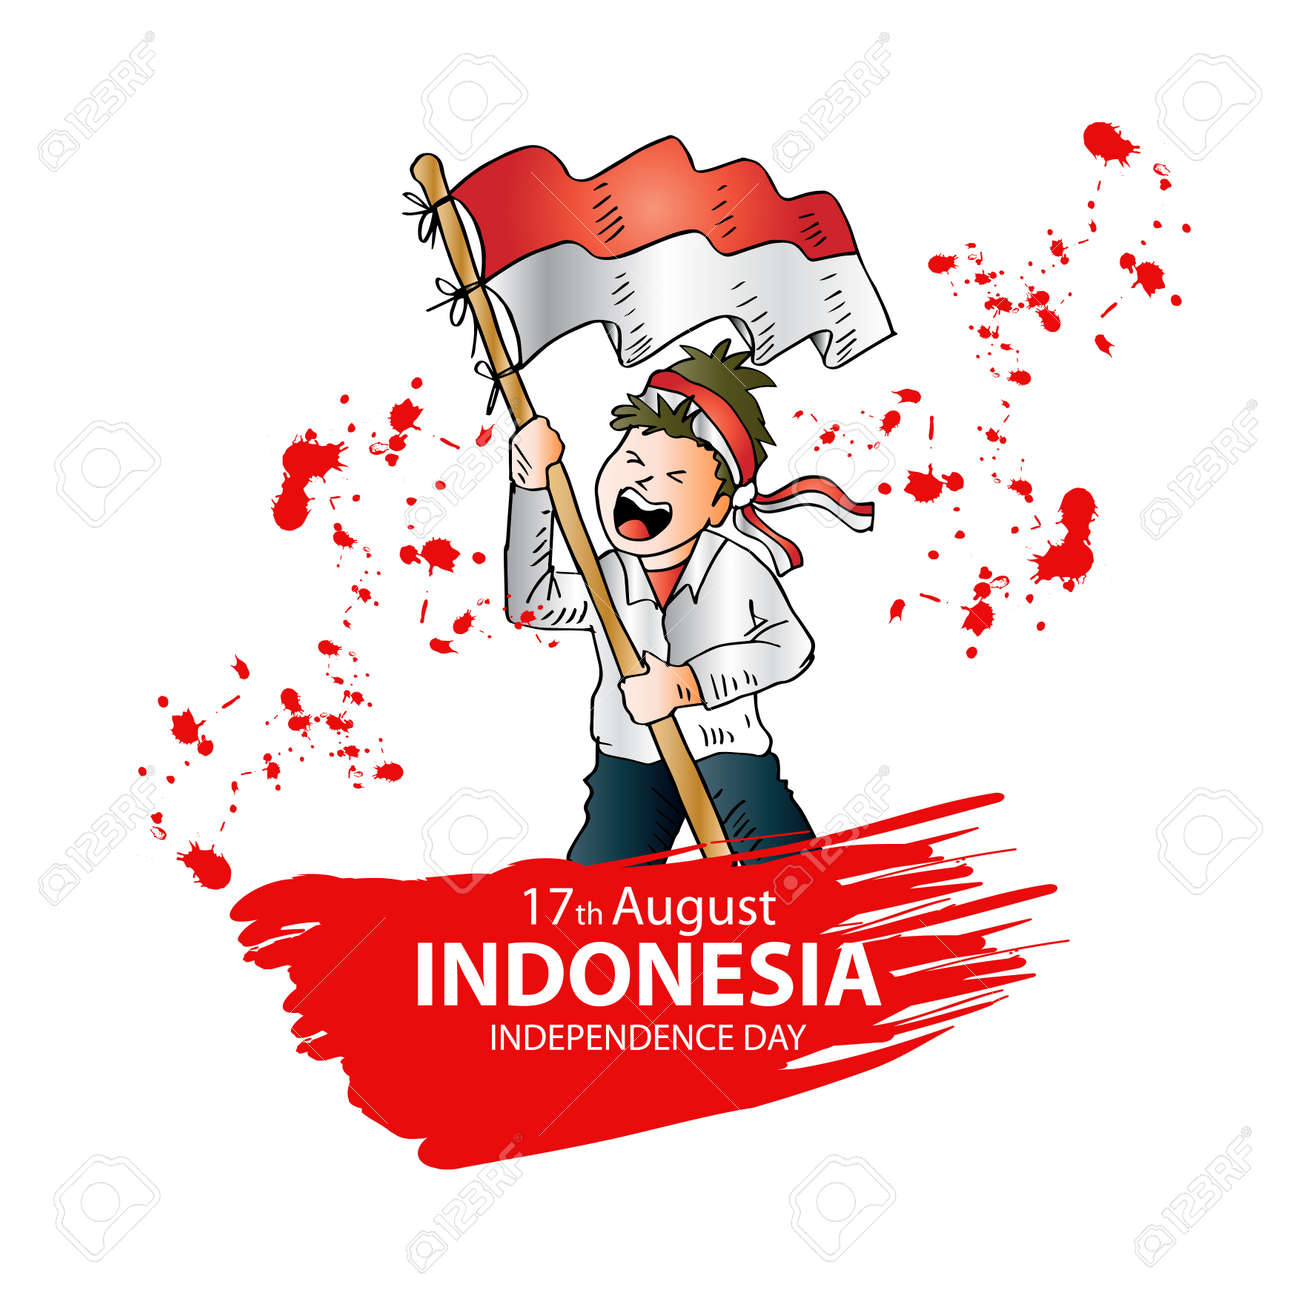 17 August. Indonesia Independence Day greeting card. - 104457508